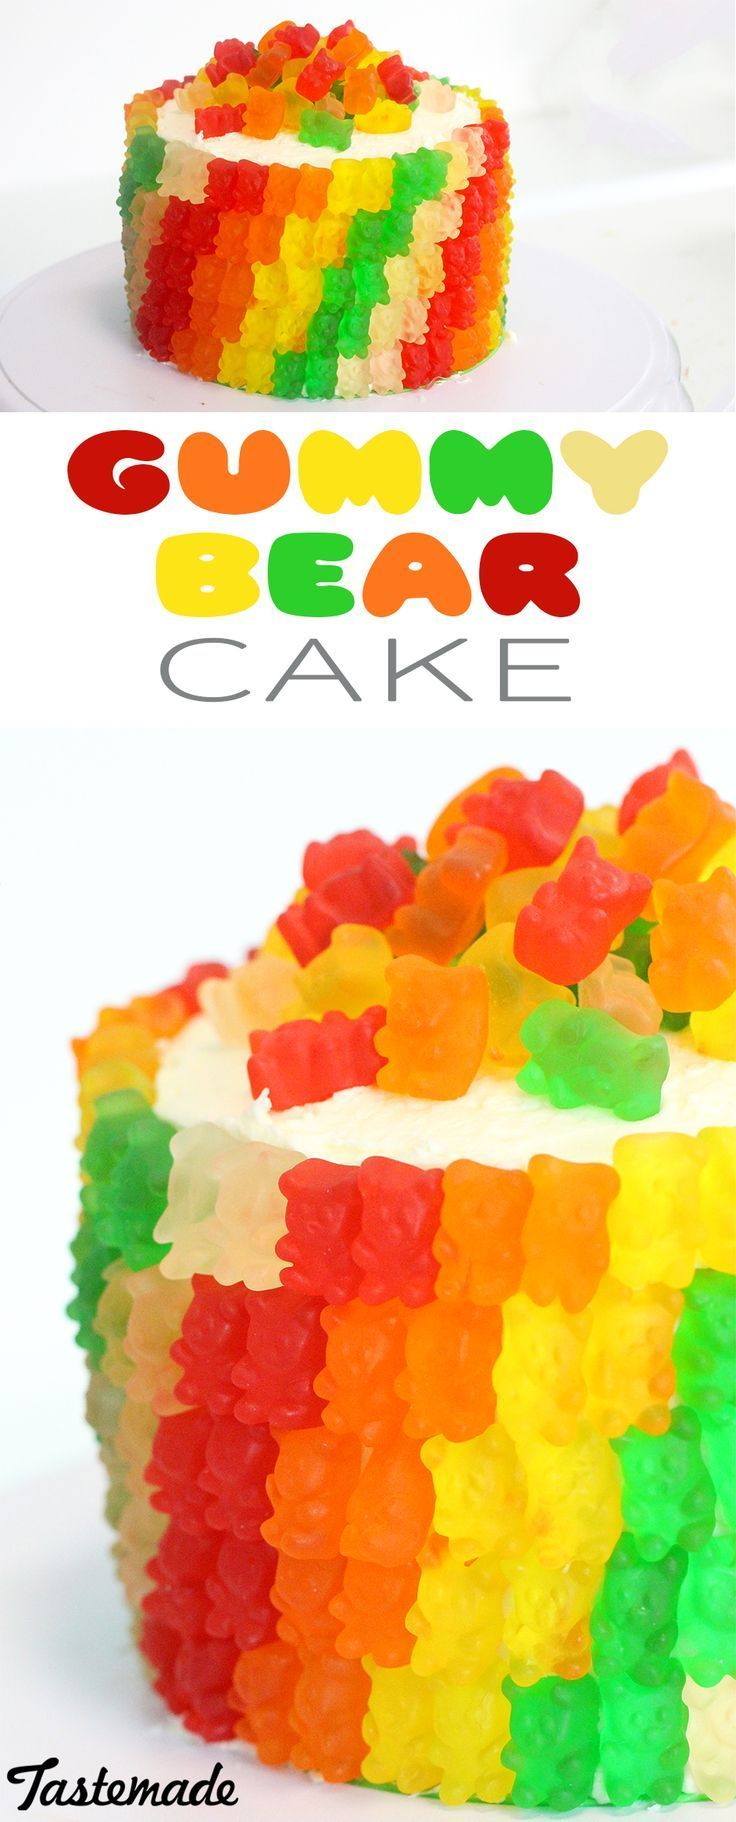 Gummy Bear Cake. Take Funfetti cake to the next level of fun with colorful frosting and gummy candy.